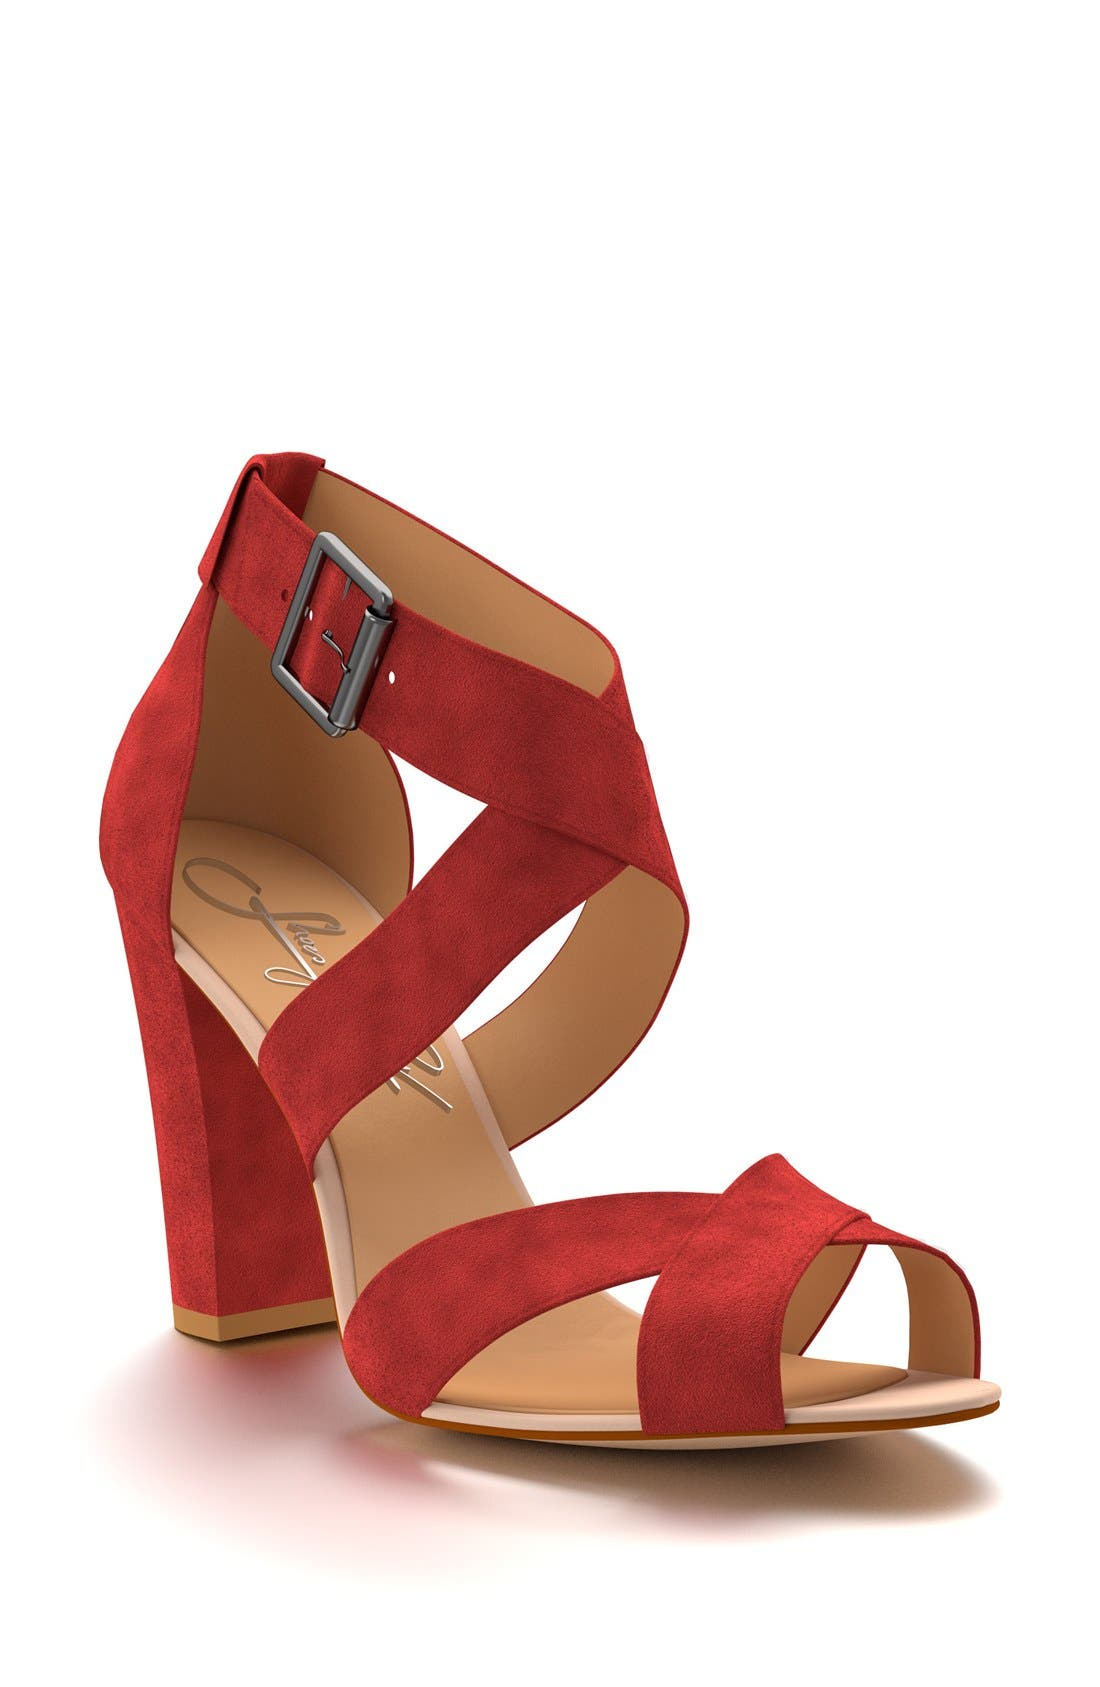 SHOES OF PREY Crisscross Strap Block Heel Sandal